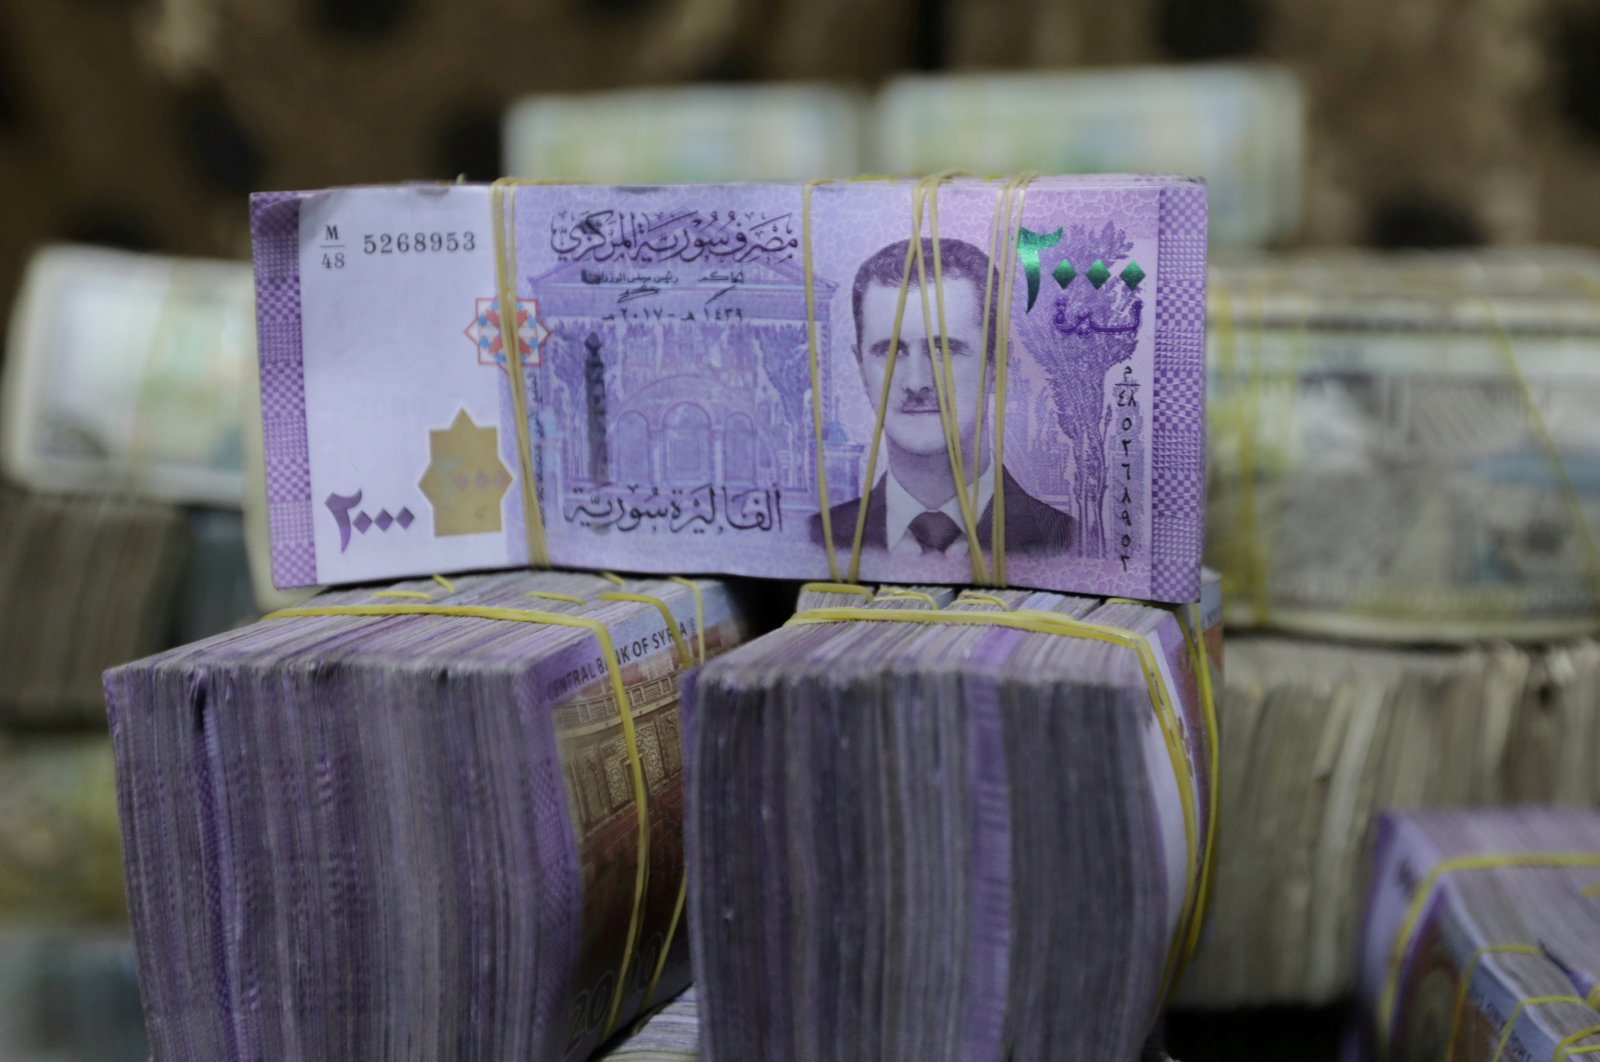 Syrian pounds are pictured inside an exchange currency shop in Azaz, Syria, Feb. 3, 2020. (REUTERS File Photo)